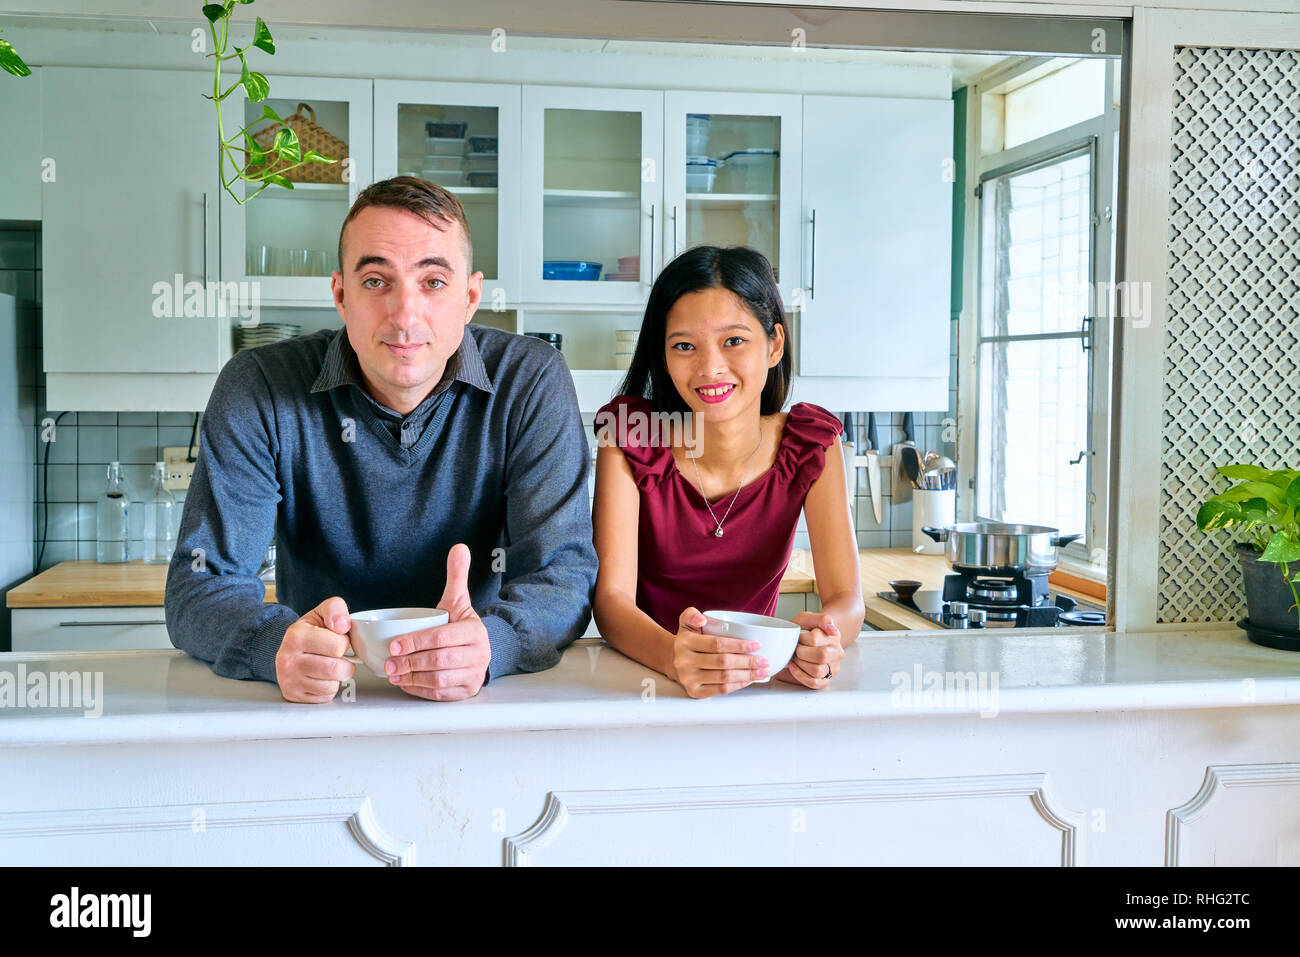 Lovely couple posing - holding of cup and looking at camera - Stock Image